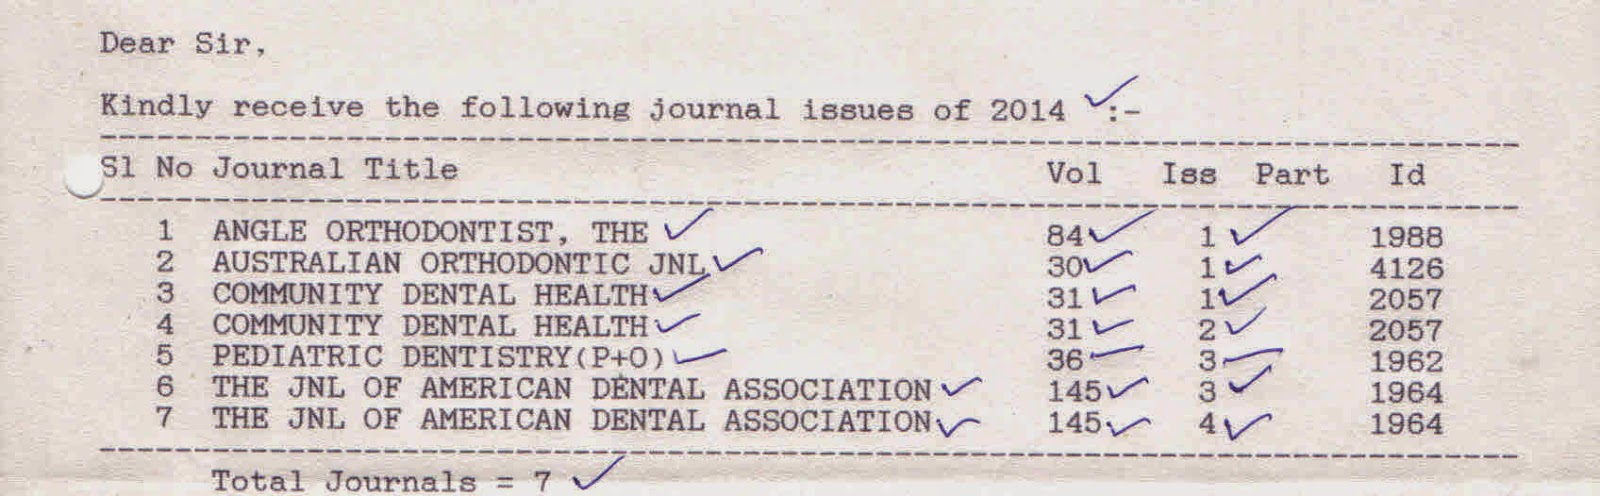 recevied journals list for the year 2014 as on 29 09 2014